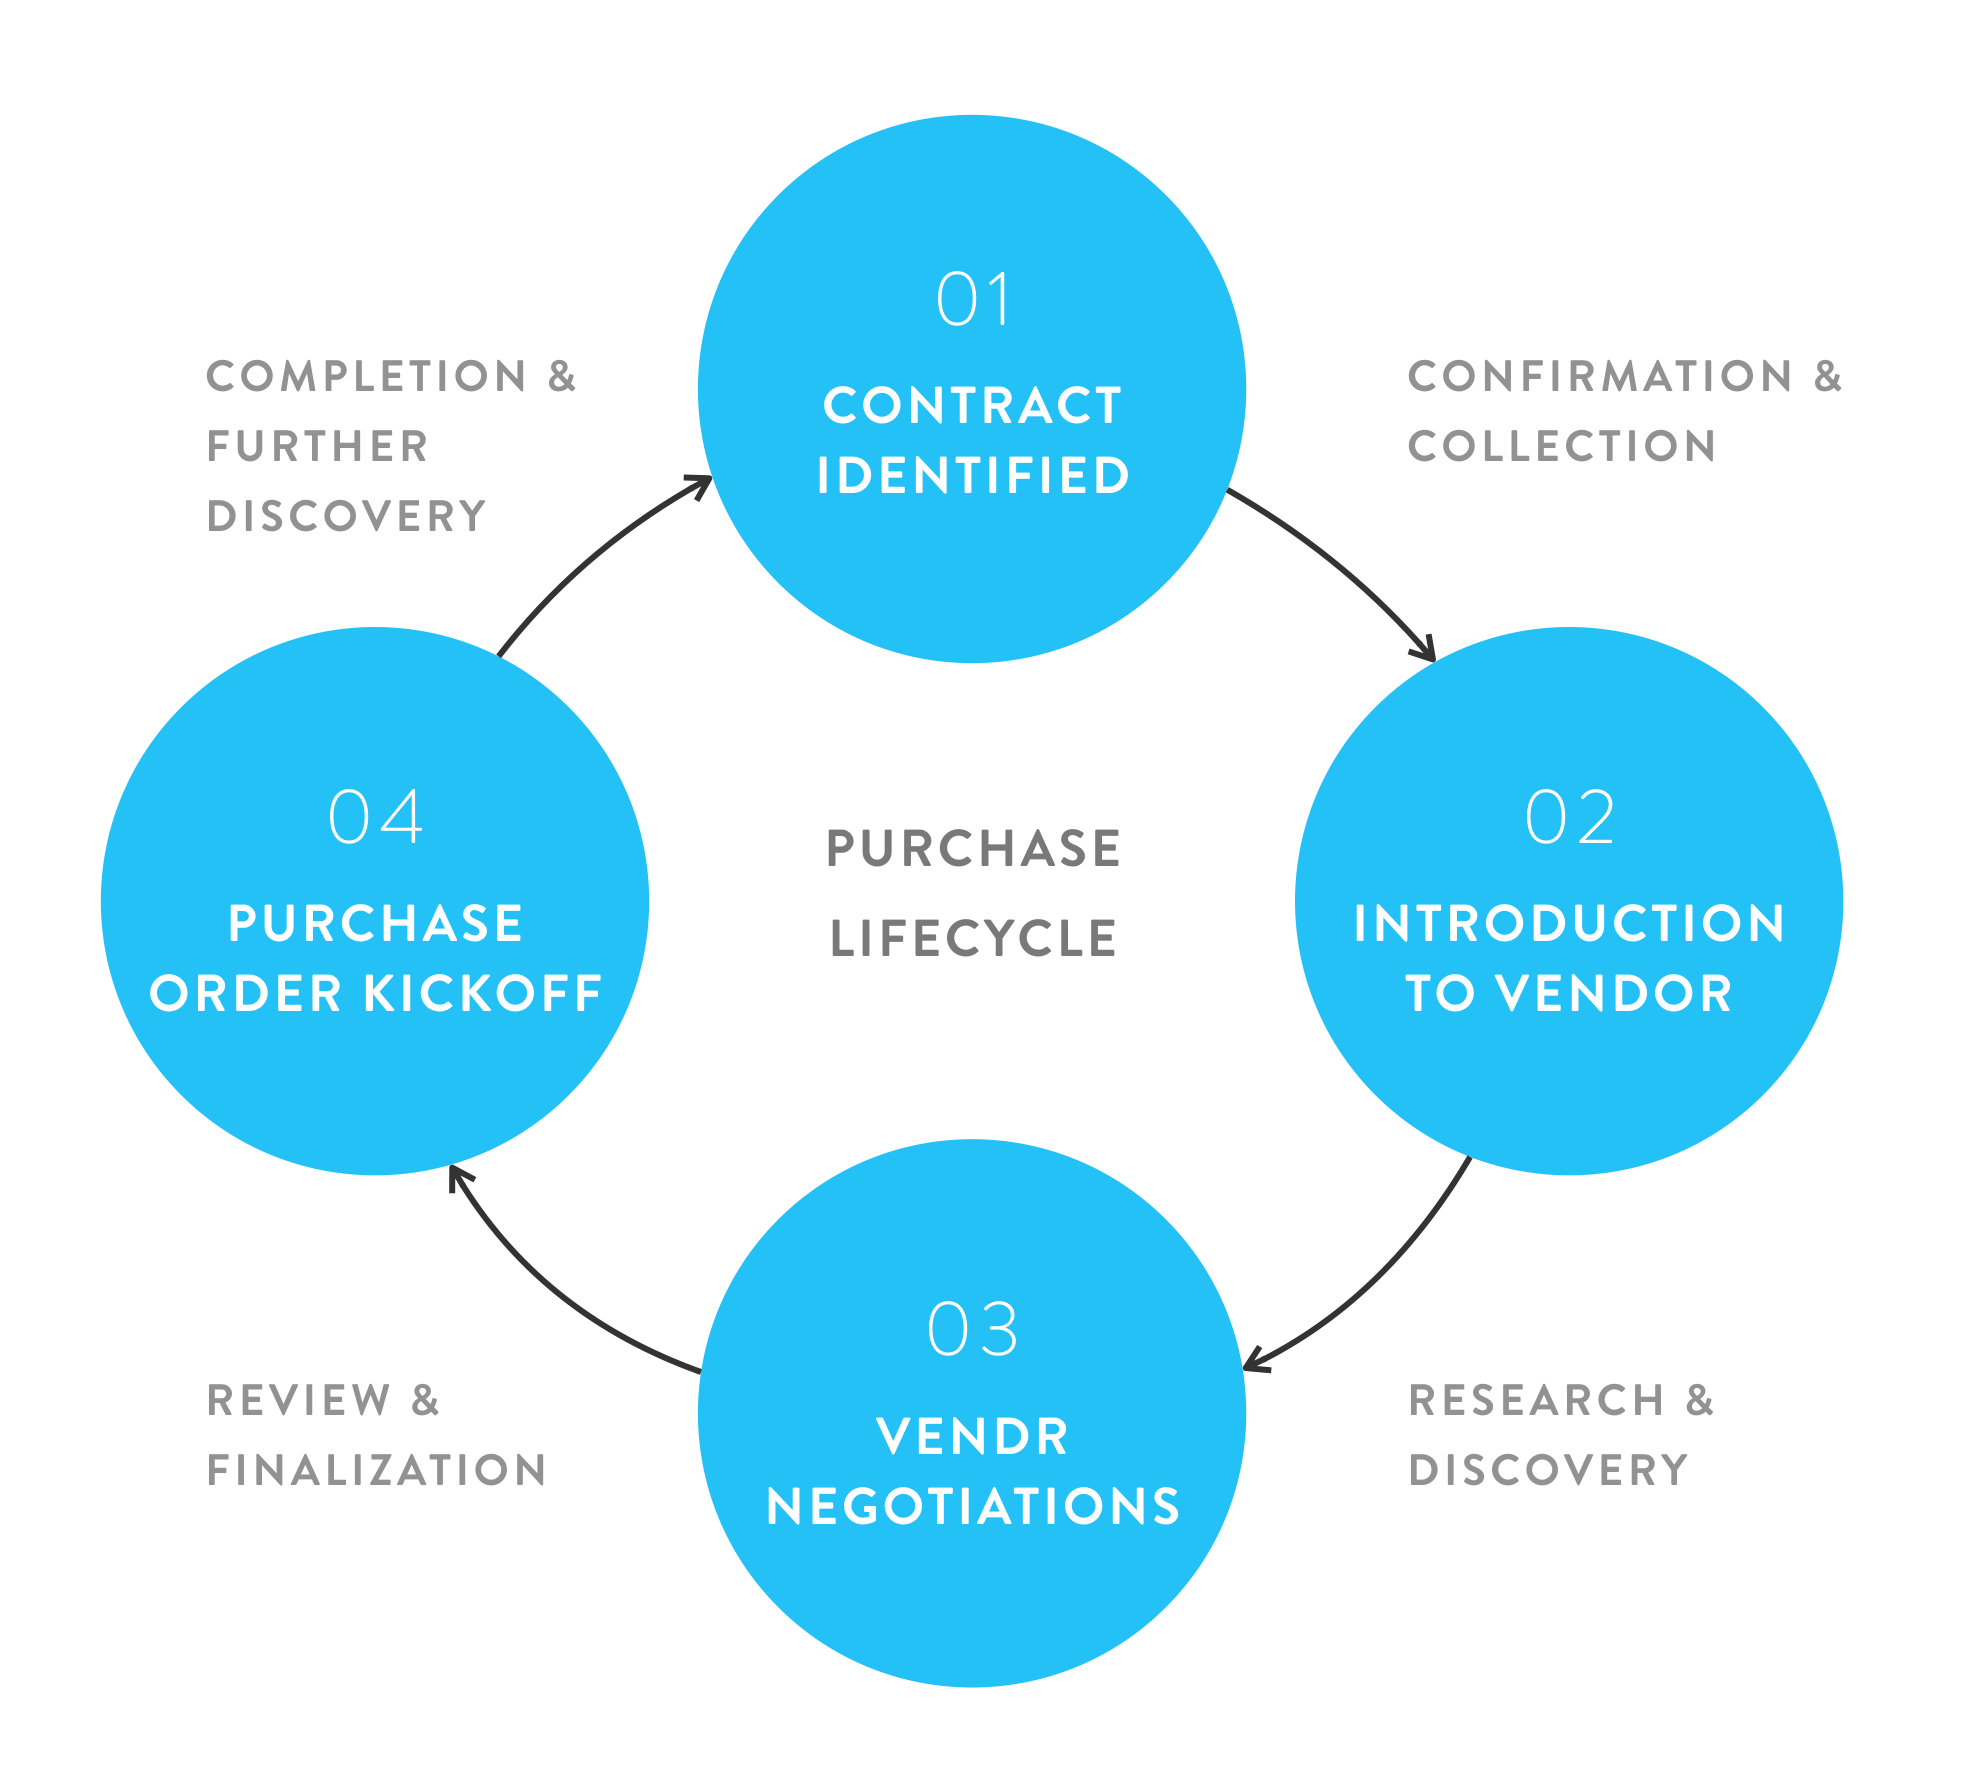 purchase lifecycle